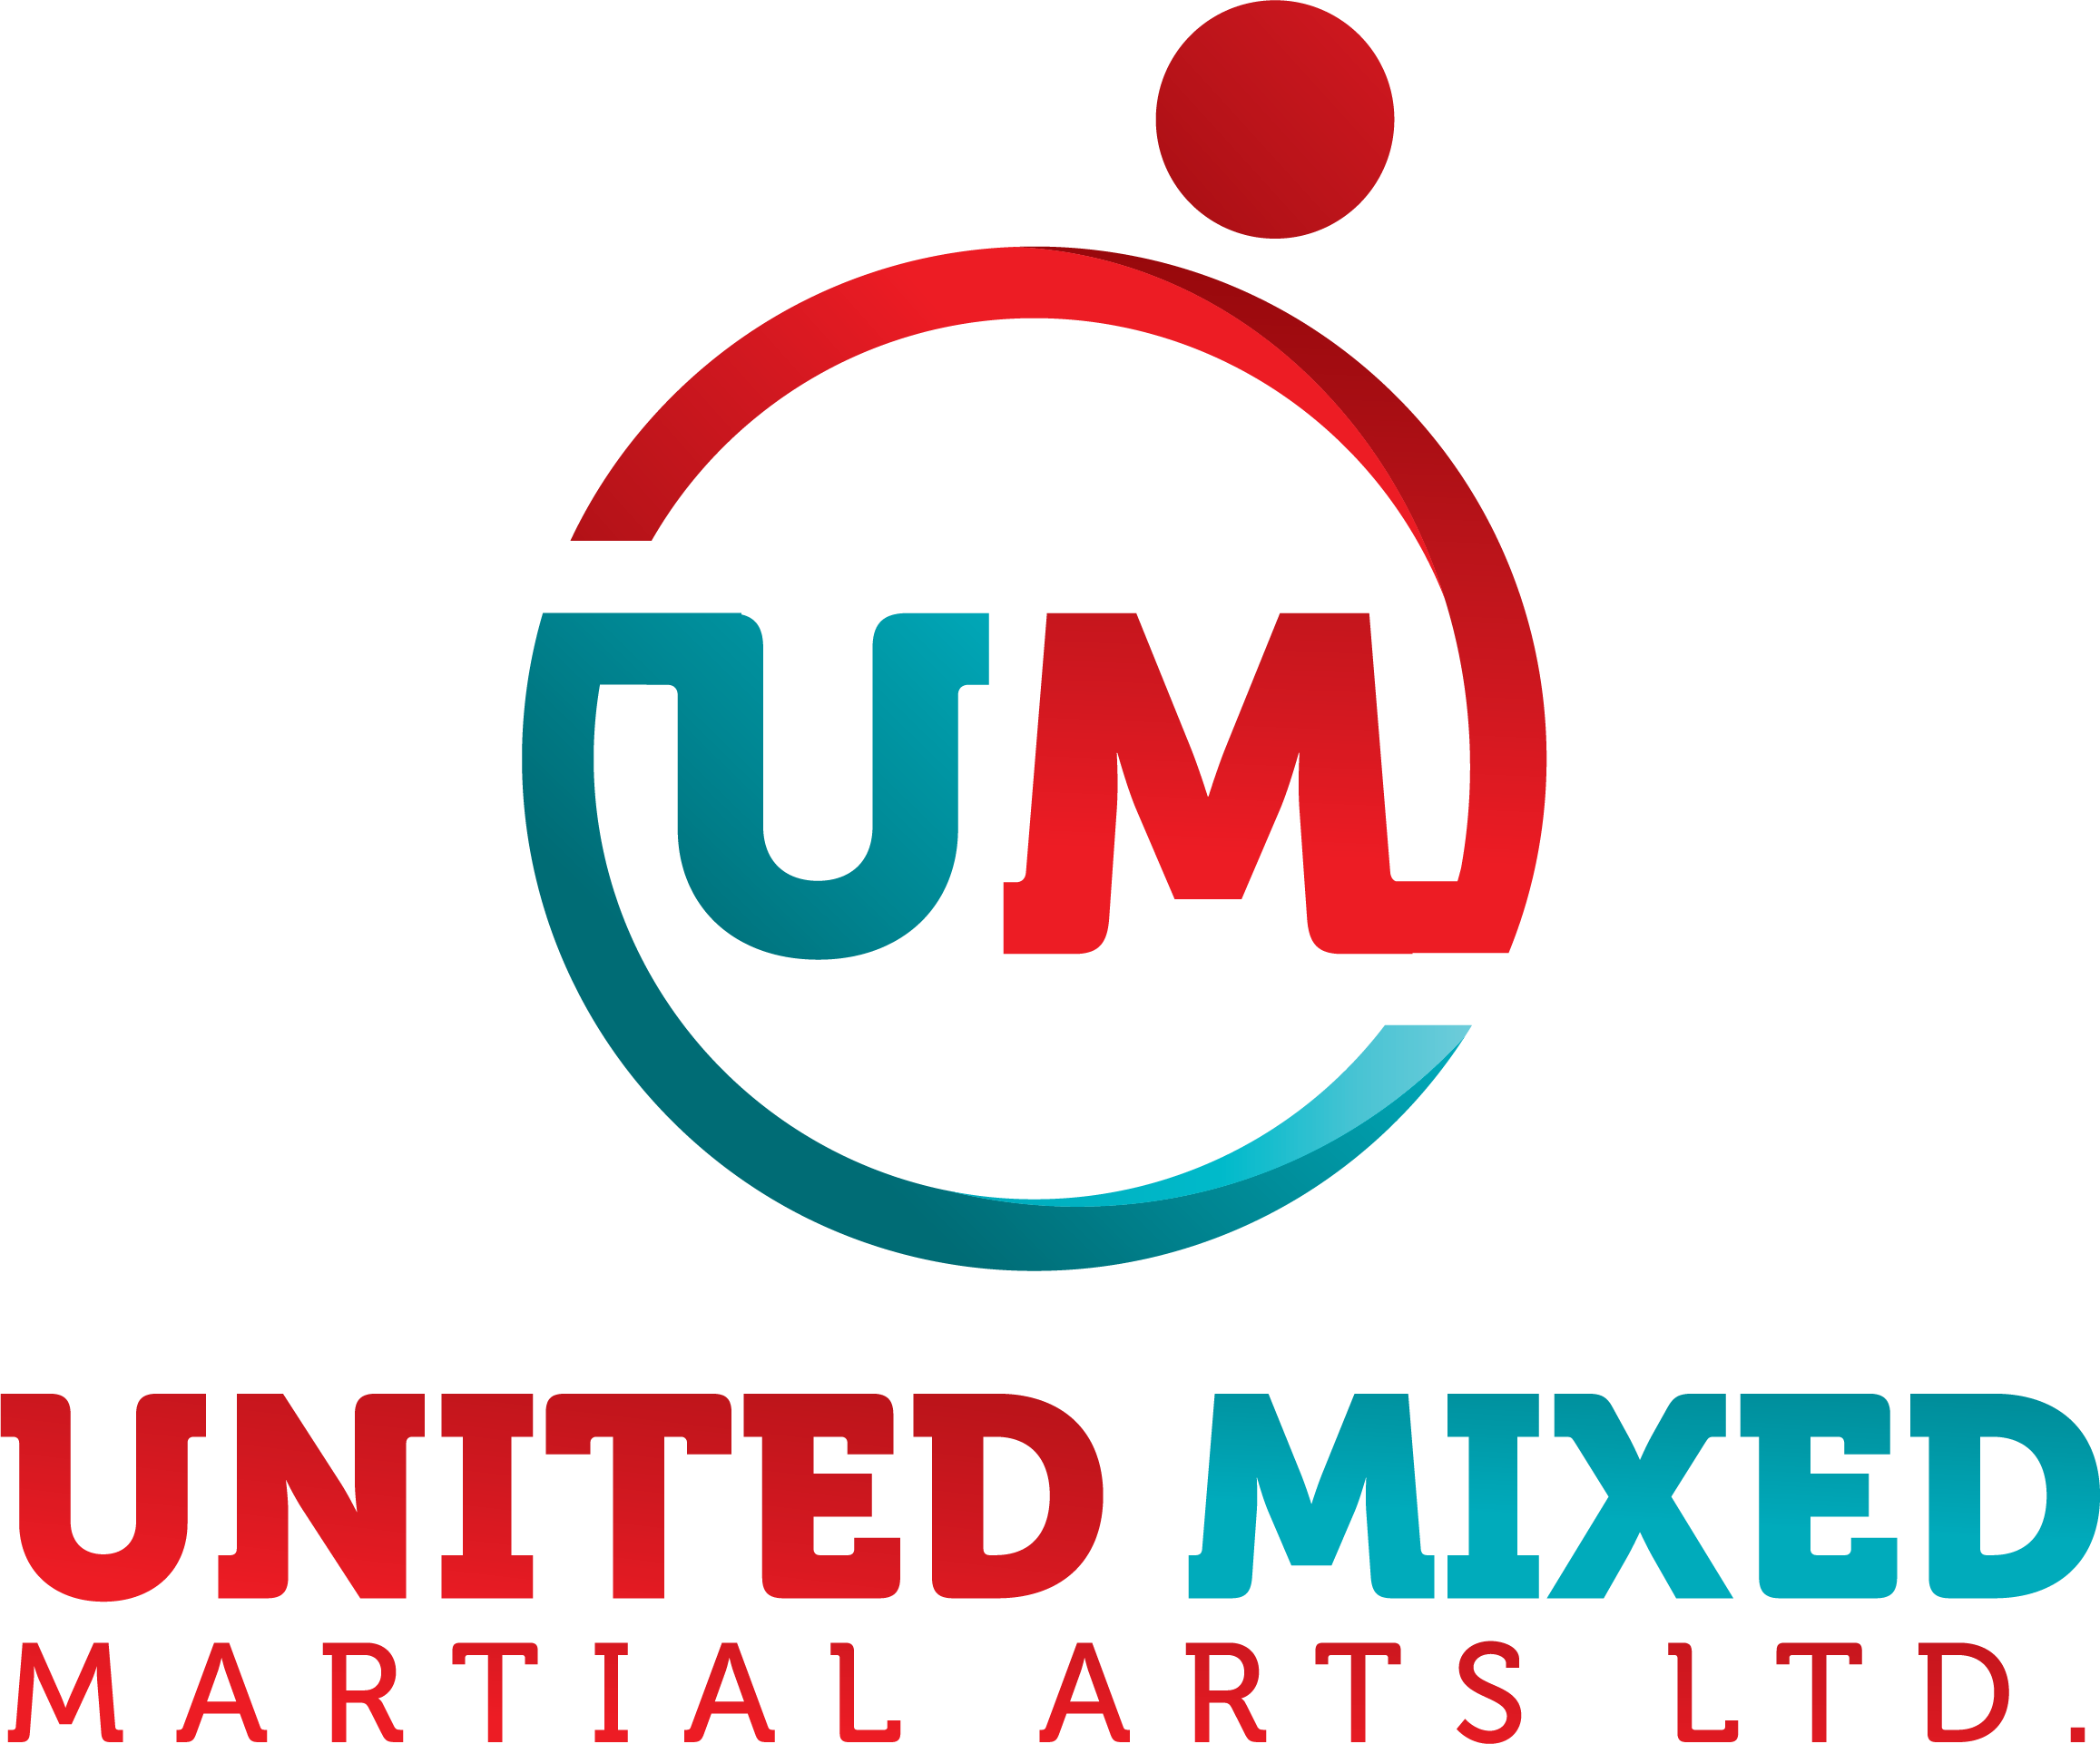 Logo Design by Prohor Ghagra - Entry No. 73 in the Logo Design Contest Artistic Logo Design for United Mixed Martial Arts Ltd..